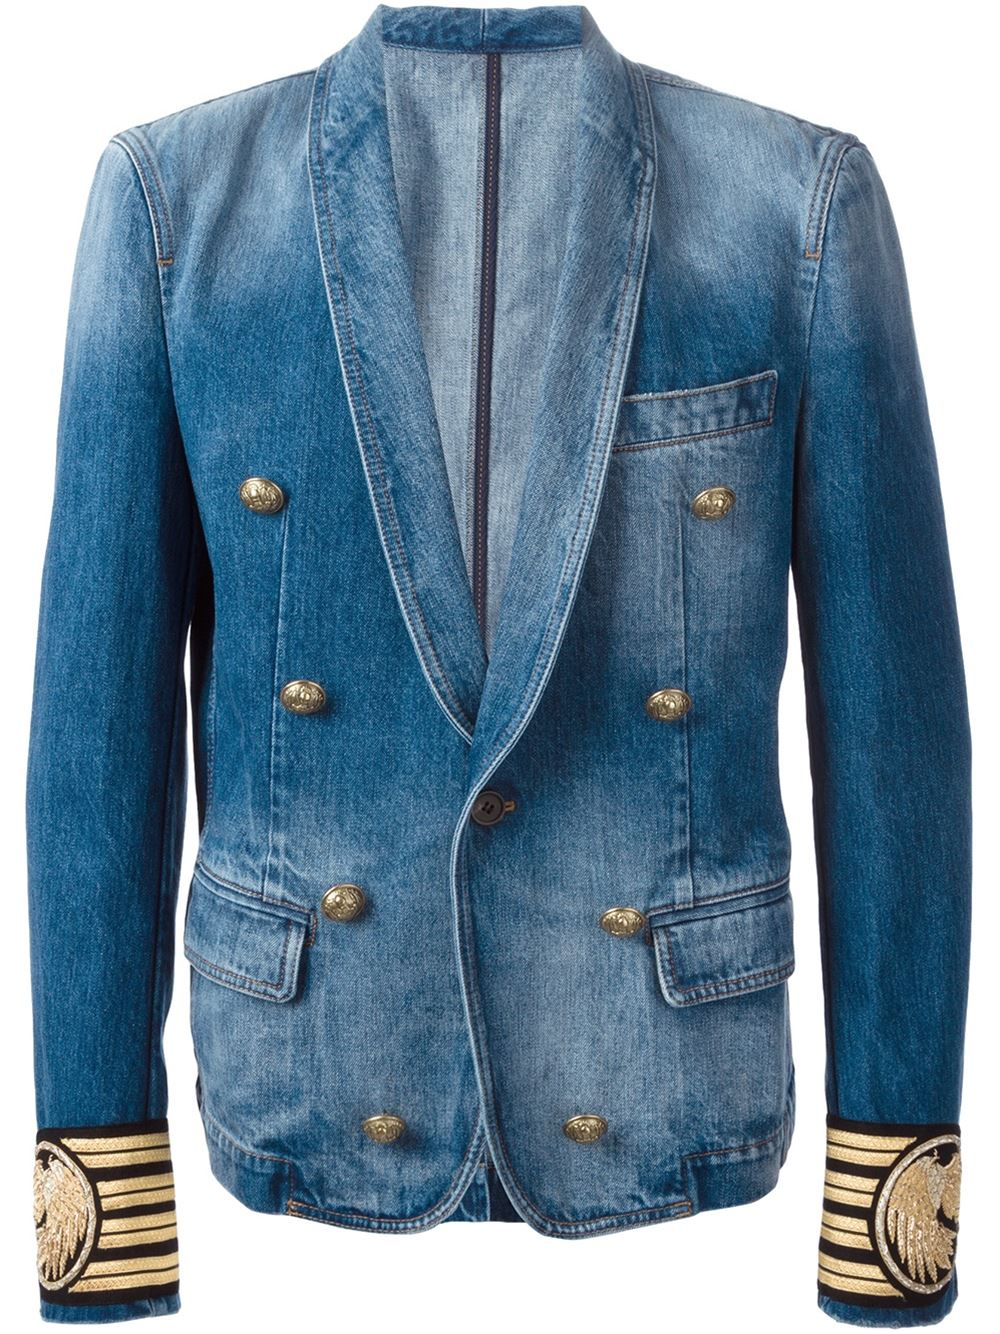 2. Men Blue Campus Sports Denim Blazer: This Denim Blazers for Men are the ideal piece to make a preppy look. The sharp cut and tasteful hues make it an exceedingly wanted thing for the form forward youth.